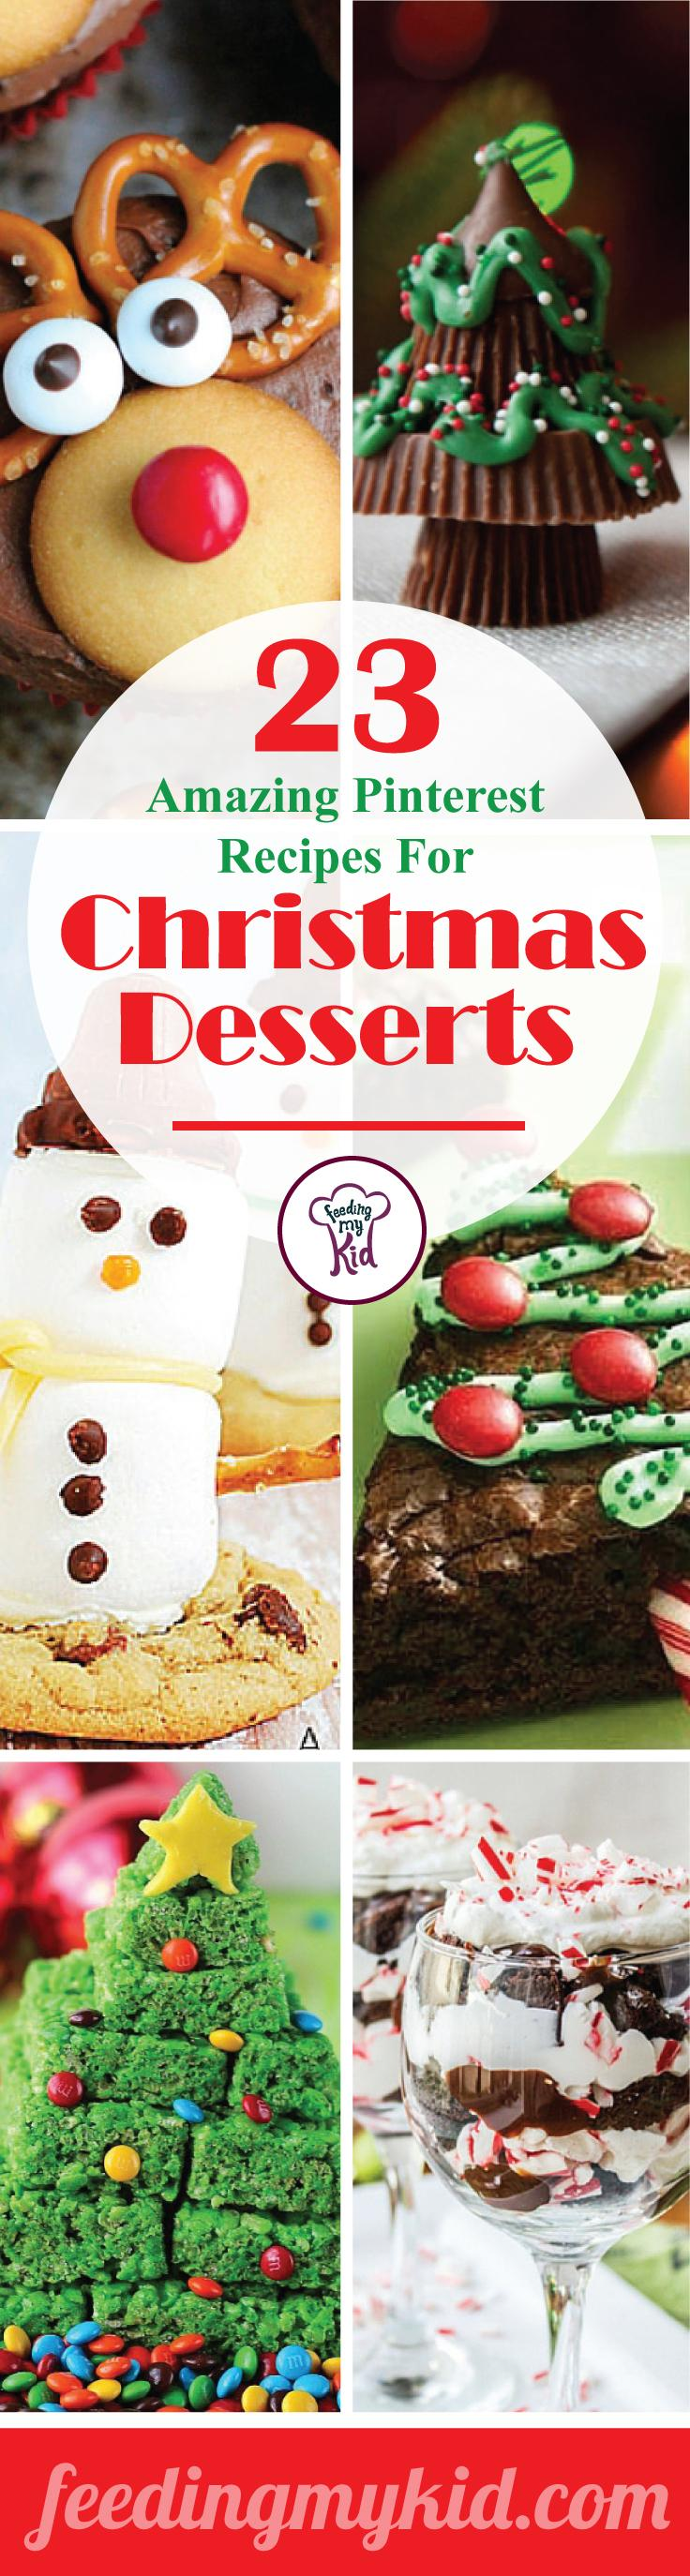 23 amazing pinterest recipes for christmas desserts 23 amazing pinterest recipes for christmas desserts there are 23 tasty treats to choose from forumfinder Choice Image